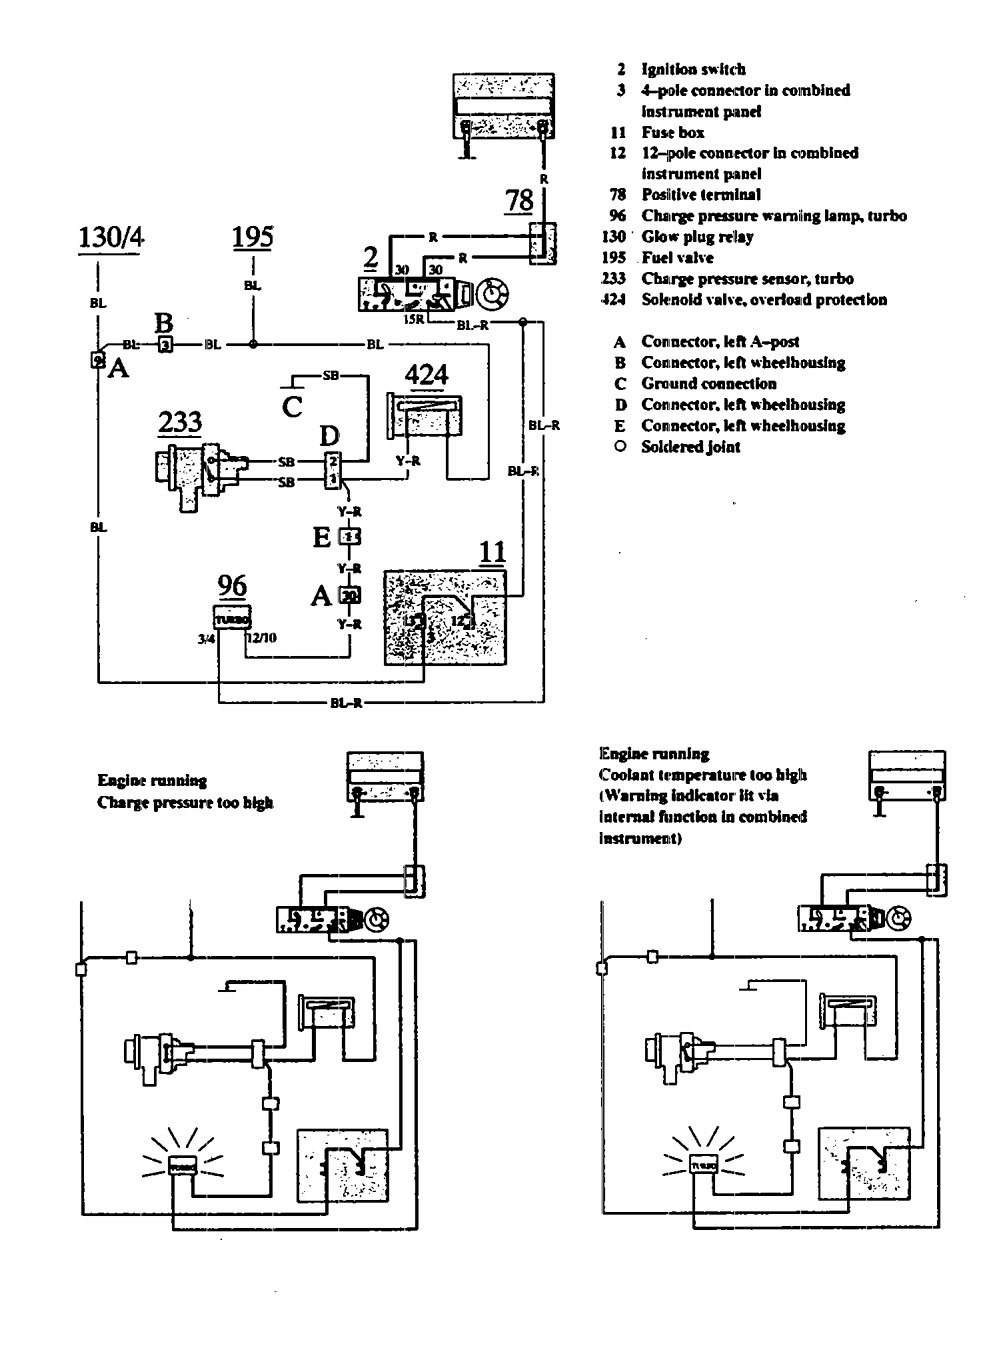 Volvo 940 (1991) - wiring diagrams - warning indicators ... on 3 phase motor wiring diagrams, contactors and relays diagrams, 3 pole switch wiring diagrams, 3 pole relay diagram, 3 pole starter solenoid,